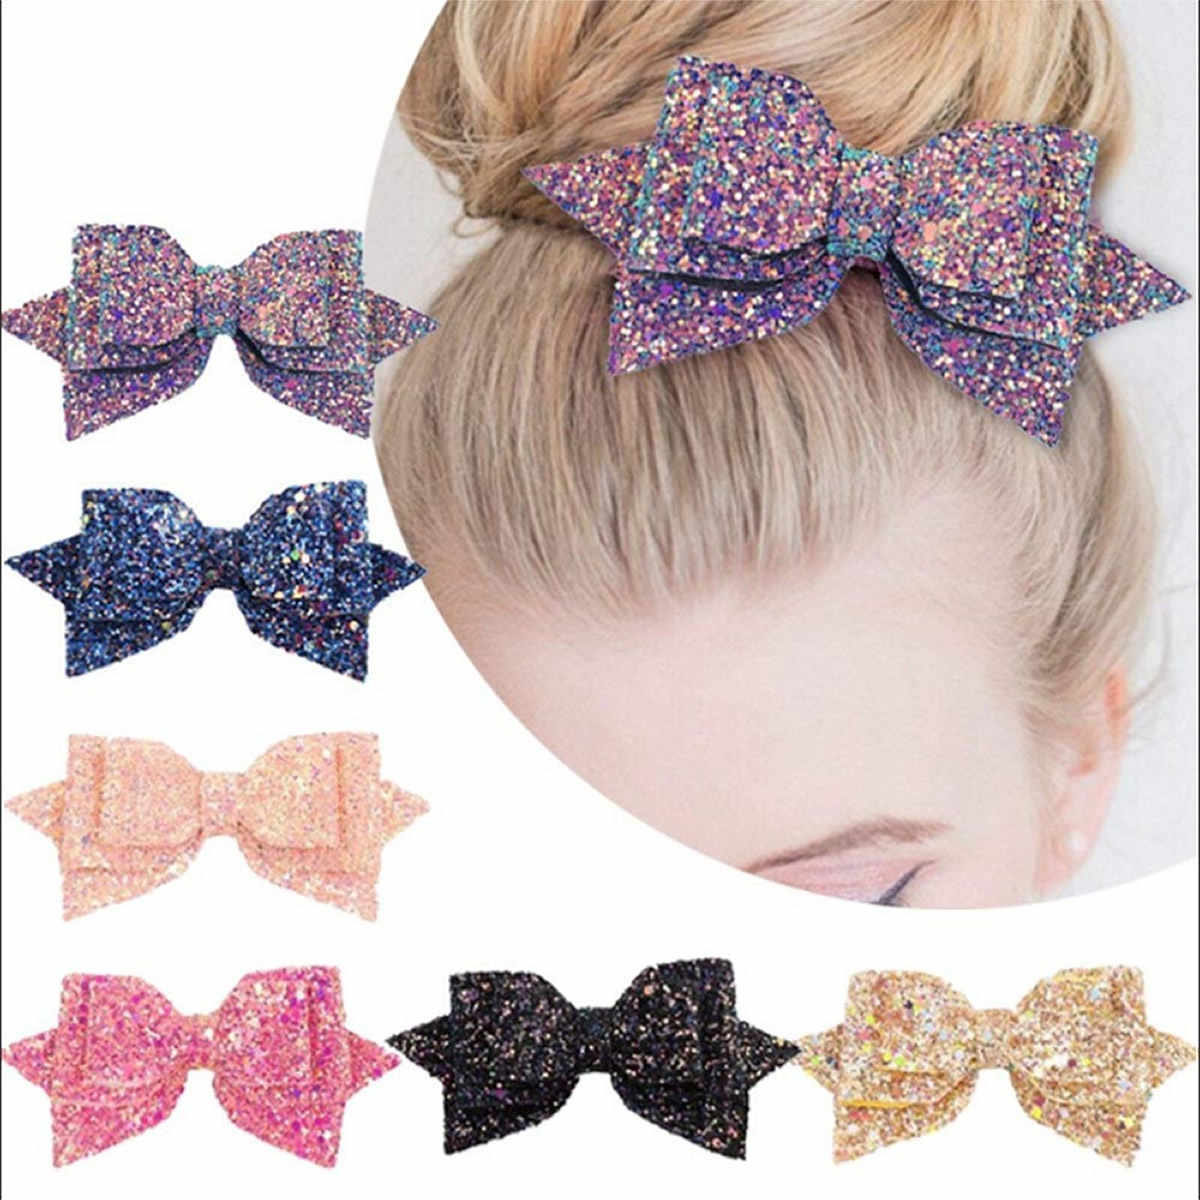 Sequin hair bows,7 inch hairpin headwear for girls huge bow clip Glitter bow knot